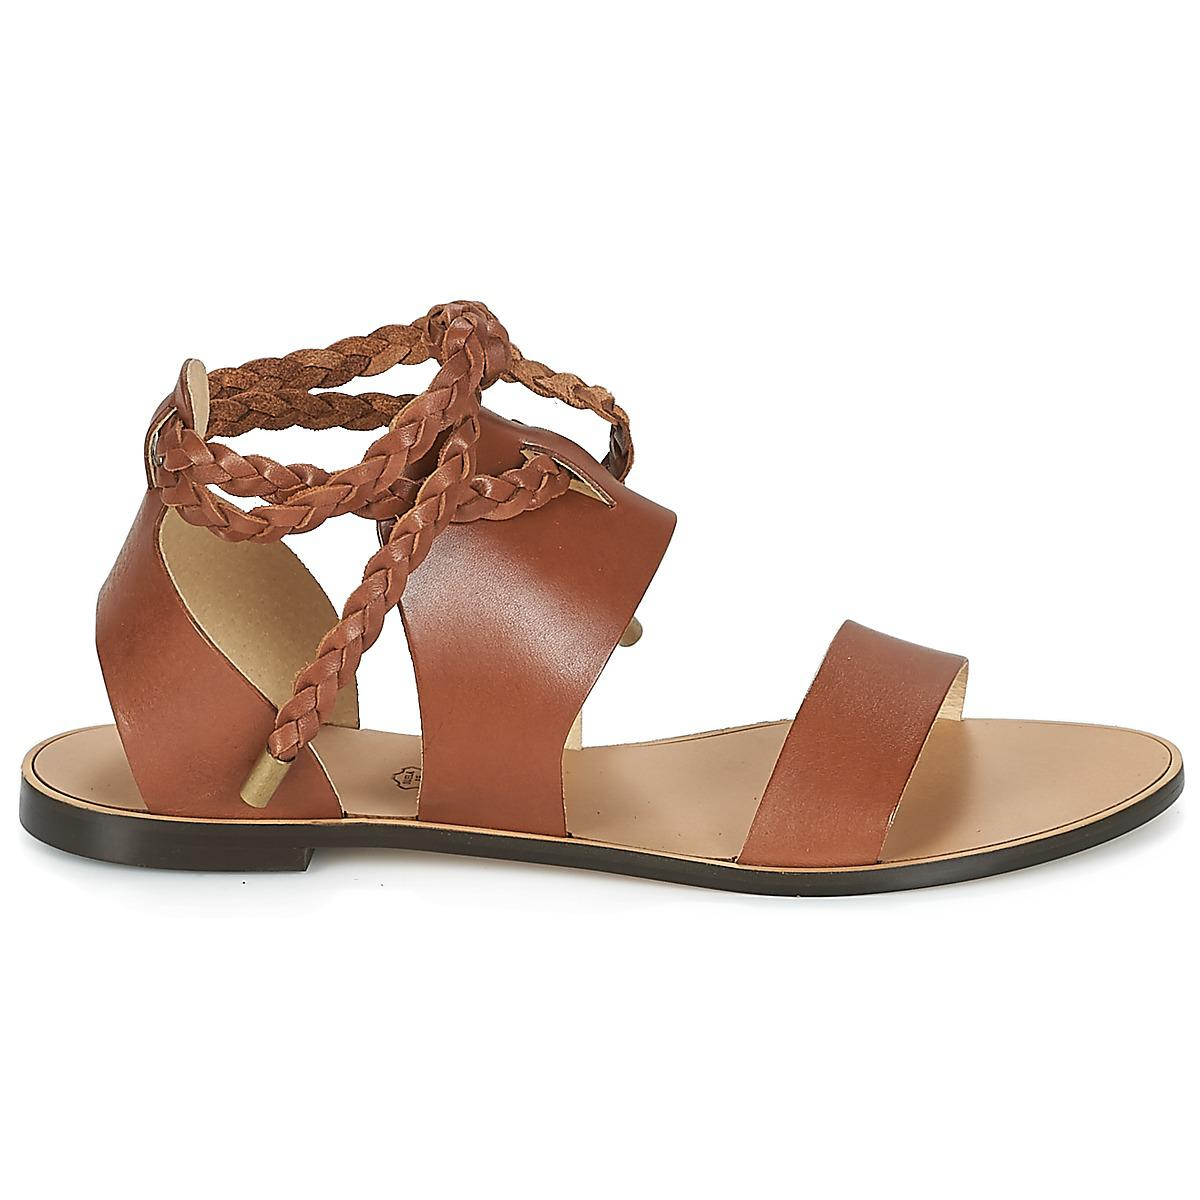 70aa631198456b ... Ikks Sandale Plate Tressee Women s Sandals In Brown in Brown - Lyst new  arrive e179c  Etro MOCASSIN 3705 Brown Orange ...